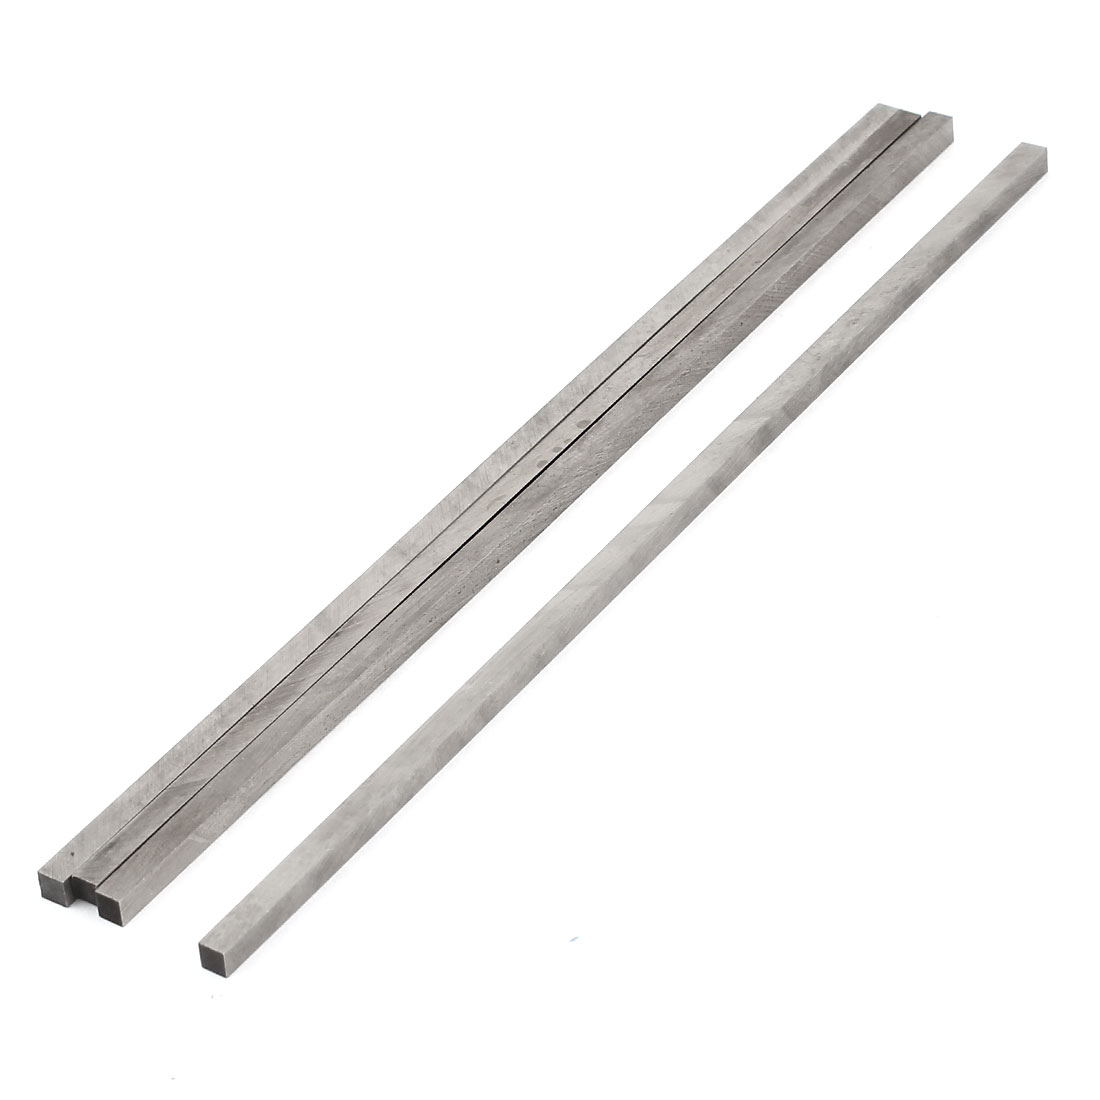 CNC Lathe High Speed Steel Square Shape Cutting Tool Bit Bar 4mmx4mmx200mm 4 Pcs